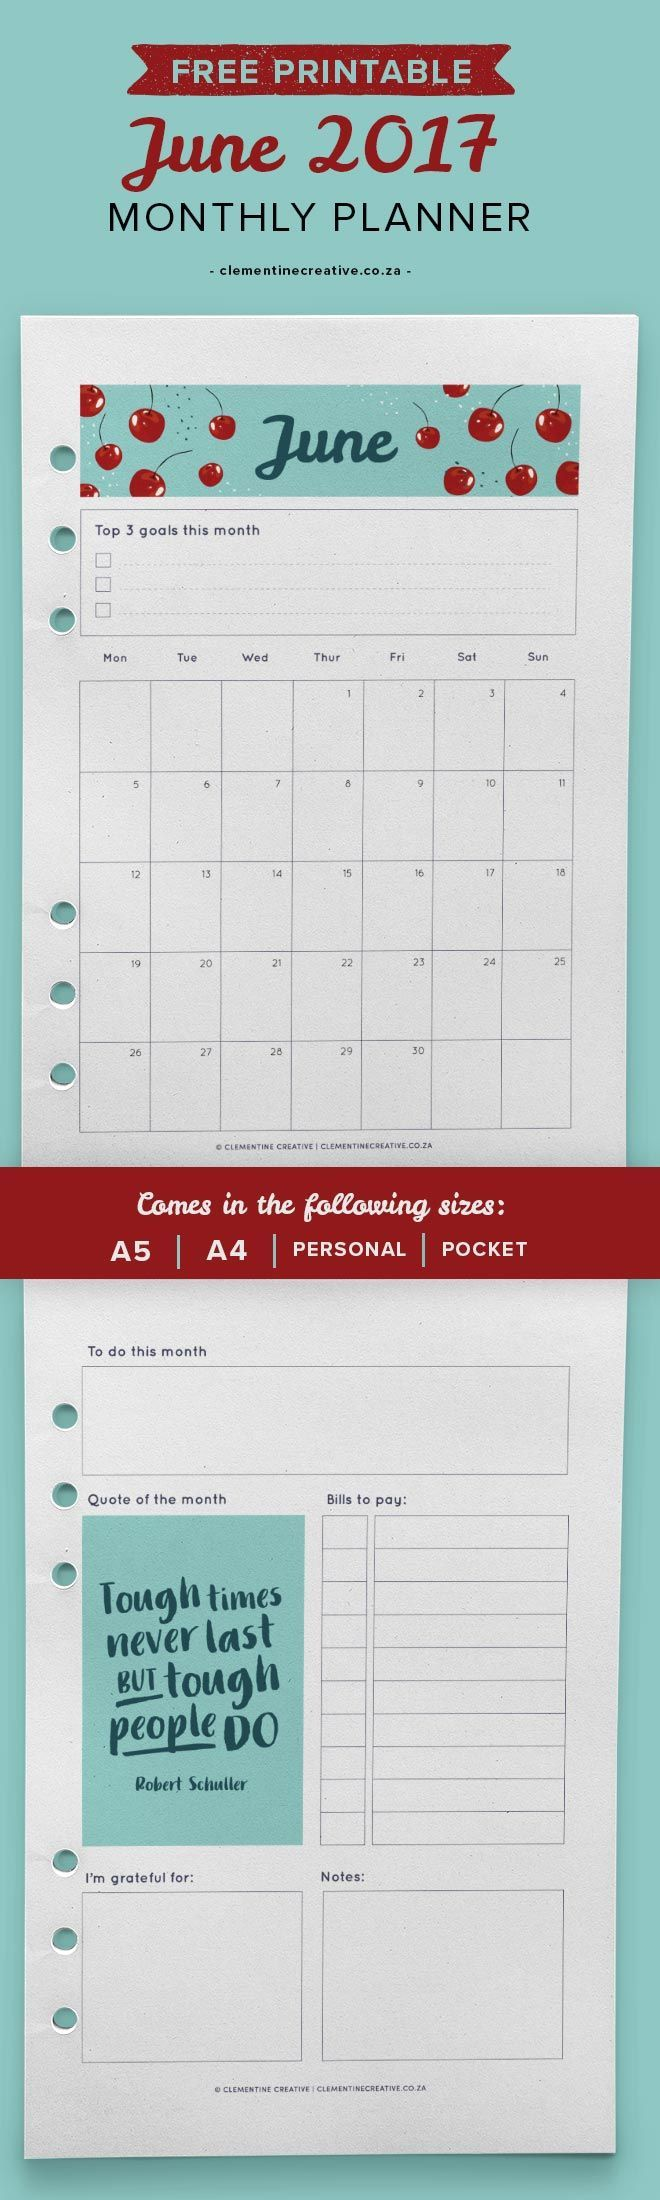 9 best Checklists and Forms images on Pinterest | Pdf, Schedule ...